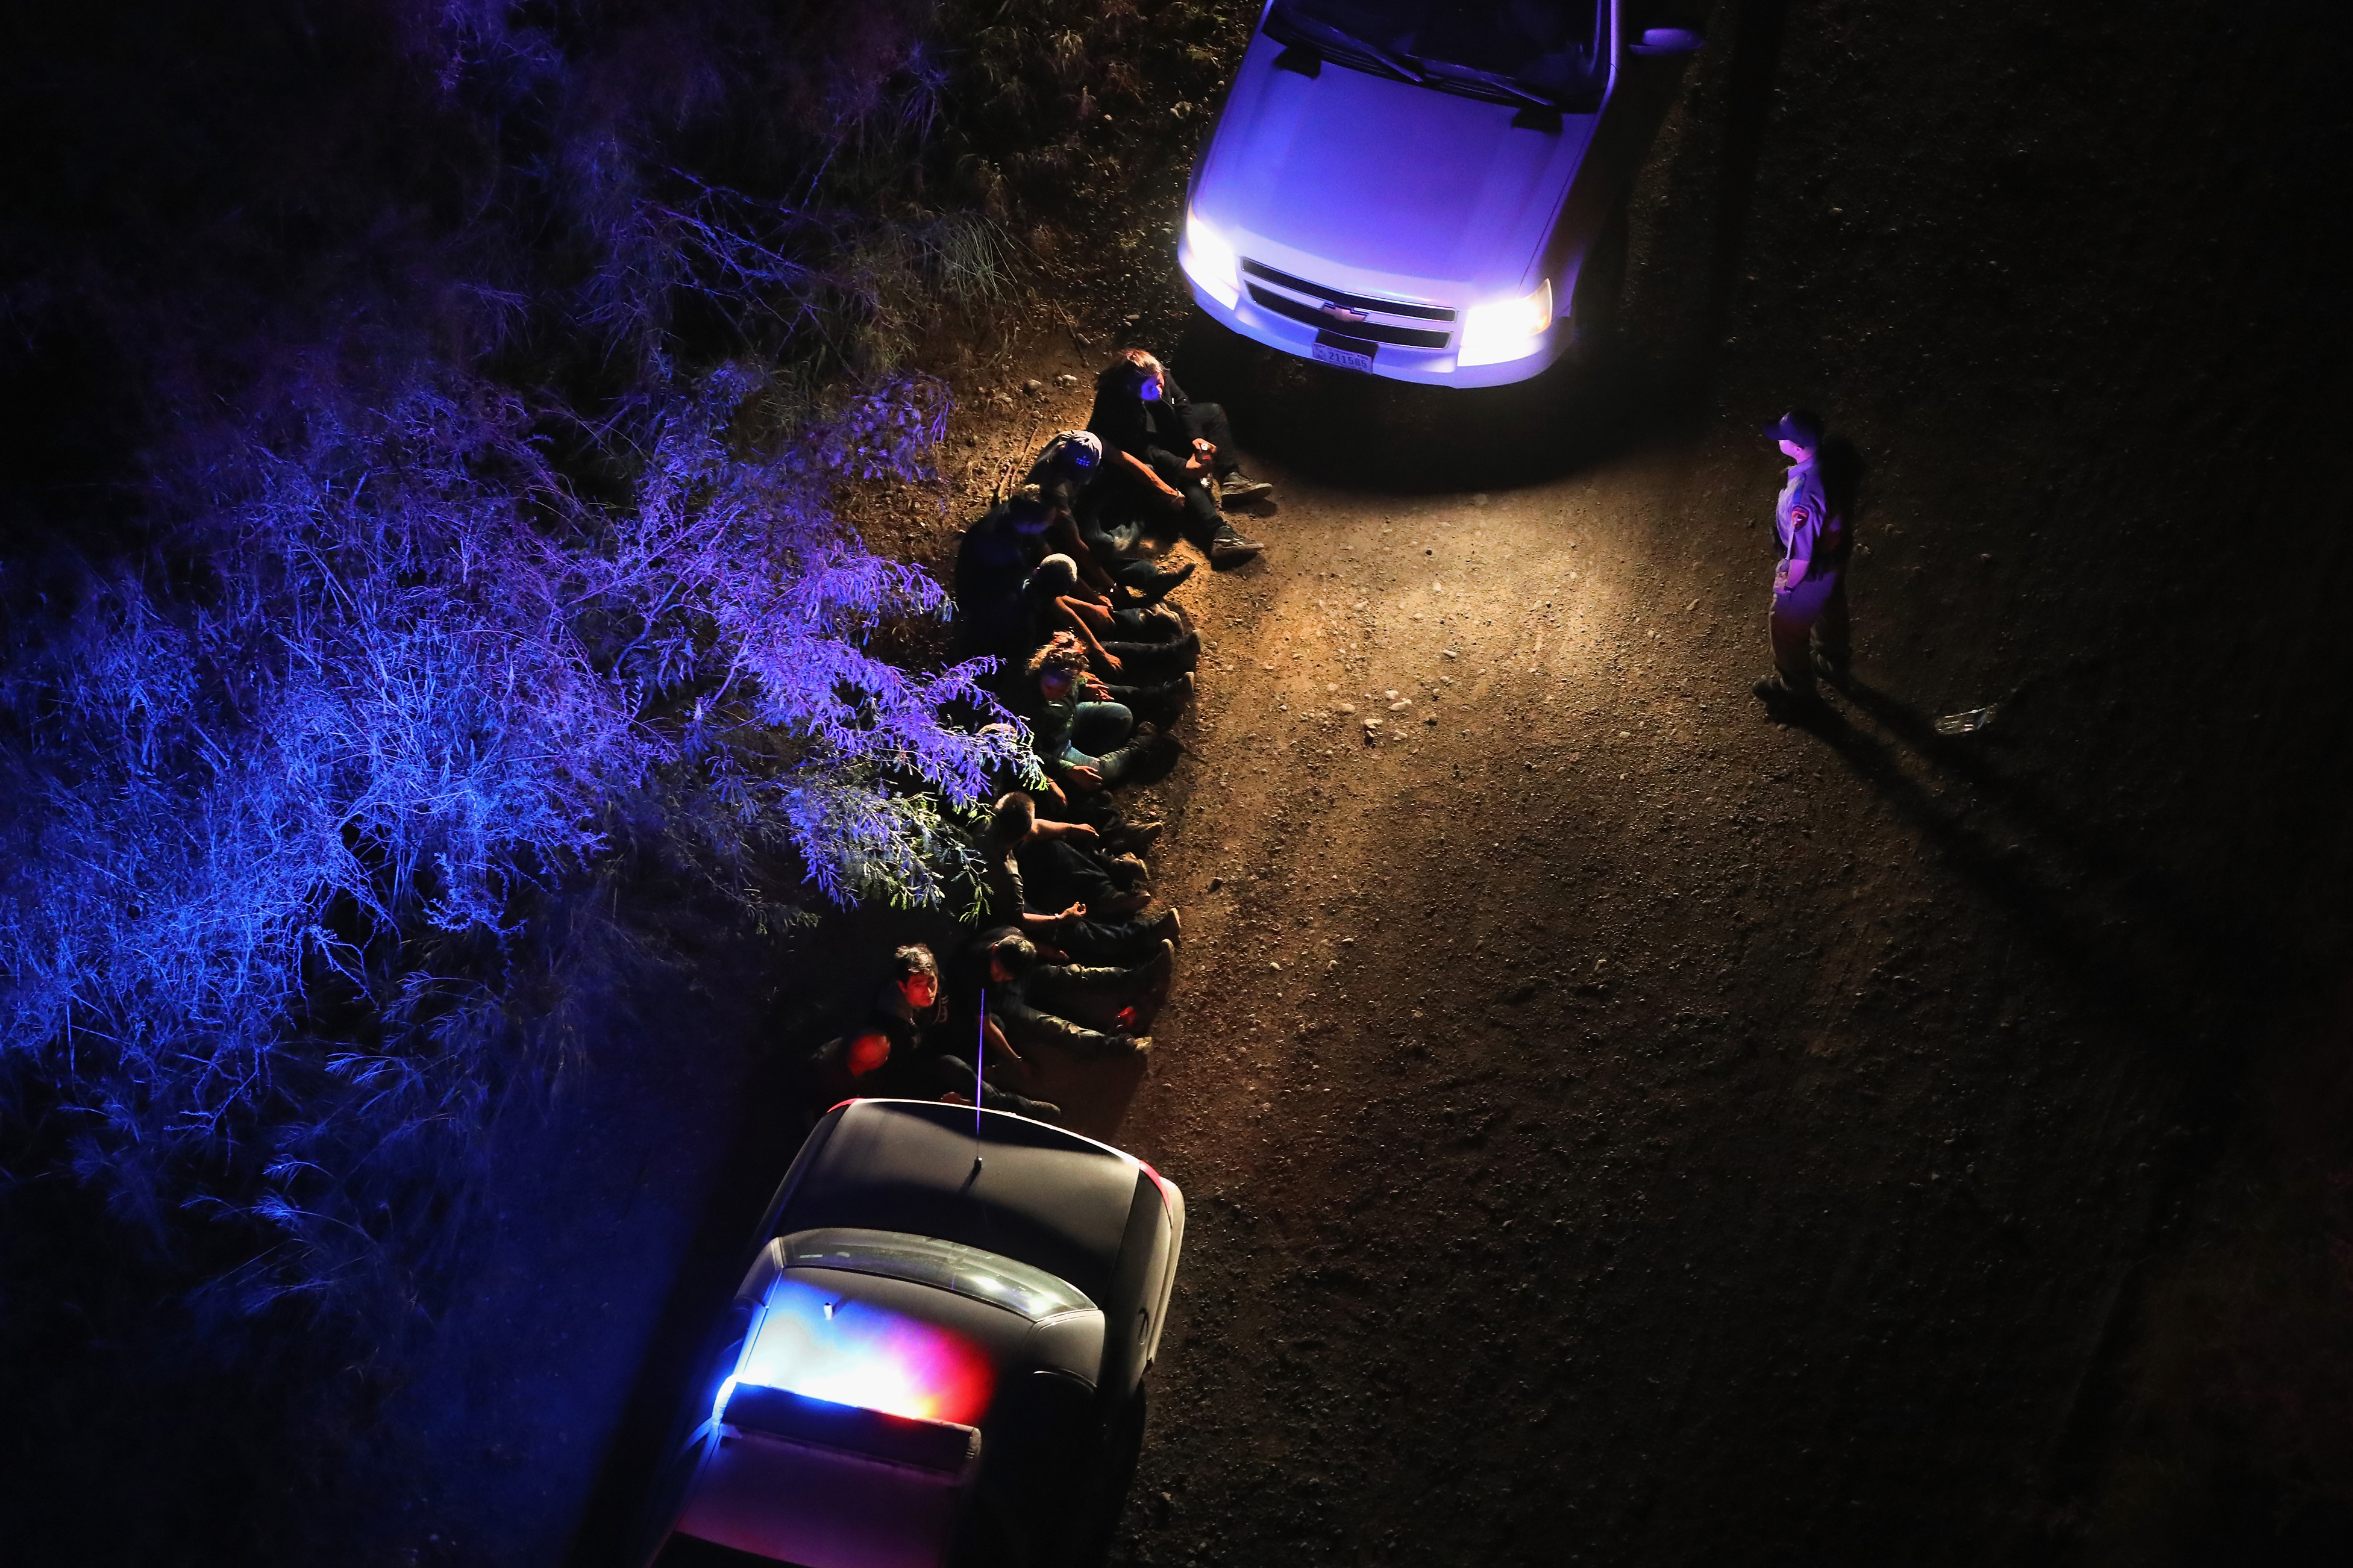 U.S. Border Patrol agents take undocumented immigrants into custody after capturing them after they crossed Rio Grande from Mexico into Texas near Sullivan City, Texas on Aug. 18, 2016.